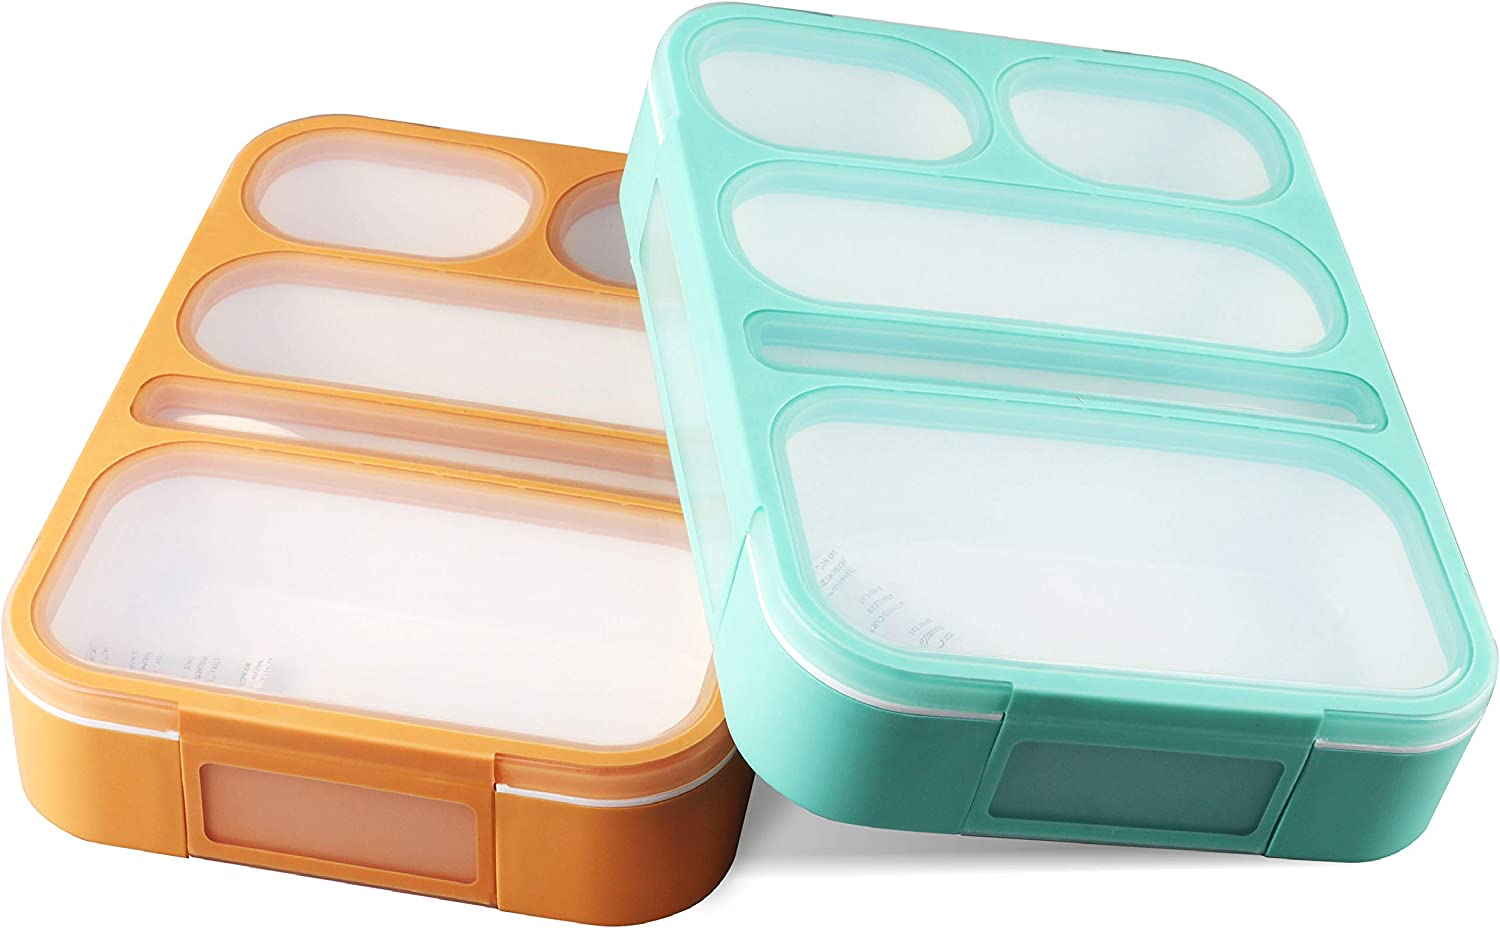 Amazon Com Bento Lunch Box Container For Kids And Adults 2 Leakproof Food Meal Prep Storage With 5 Compartments Cutlery Perfect For Healthy Food Snacks Bpa Microwave Dishwasher Safe